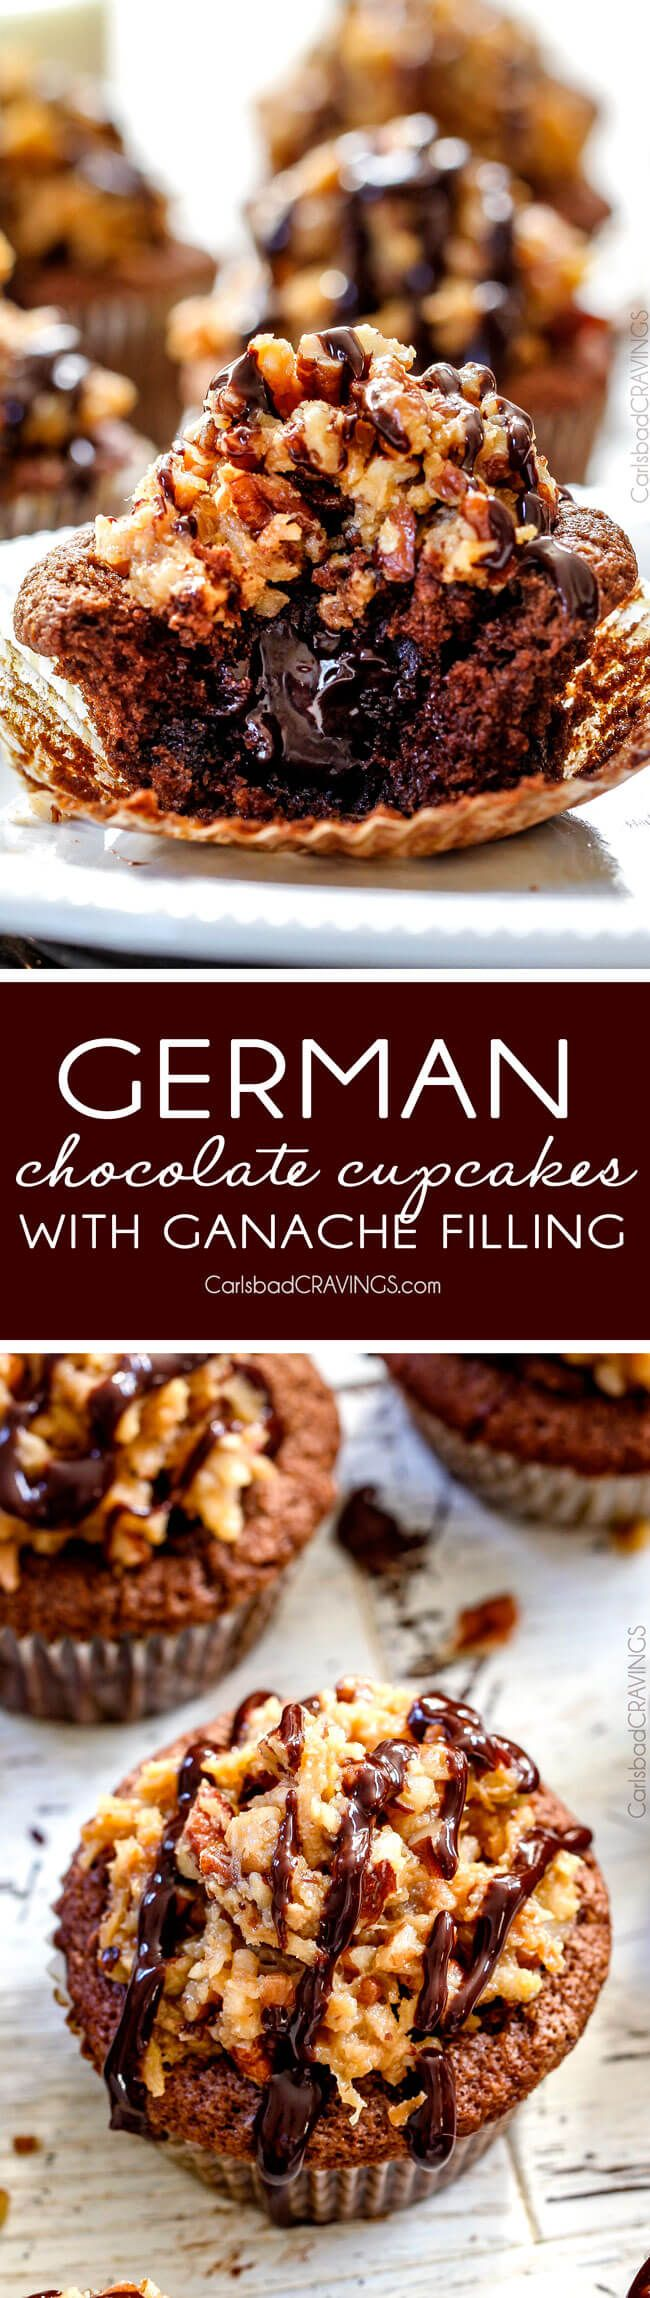 Slow Cooker: German Chocolate Cupcakes with Ganache Filling - C...